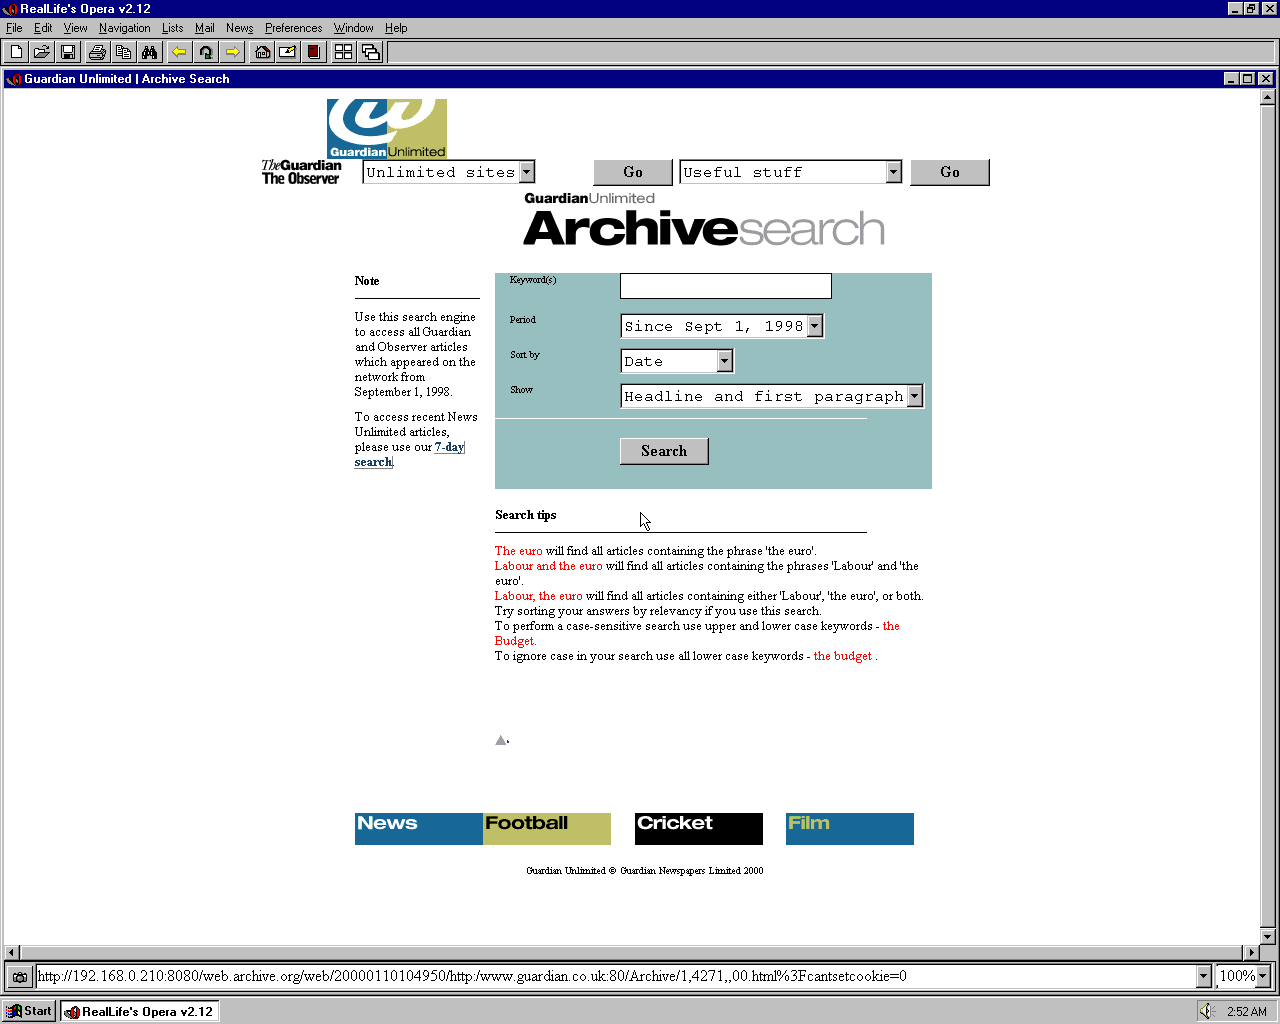 Windows 95 OSR2 x86 with Opera 2.12 displaying a page from The Guardian archived at January 10, 2000 at 10:49:50